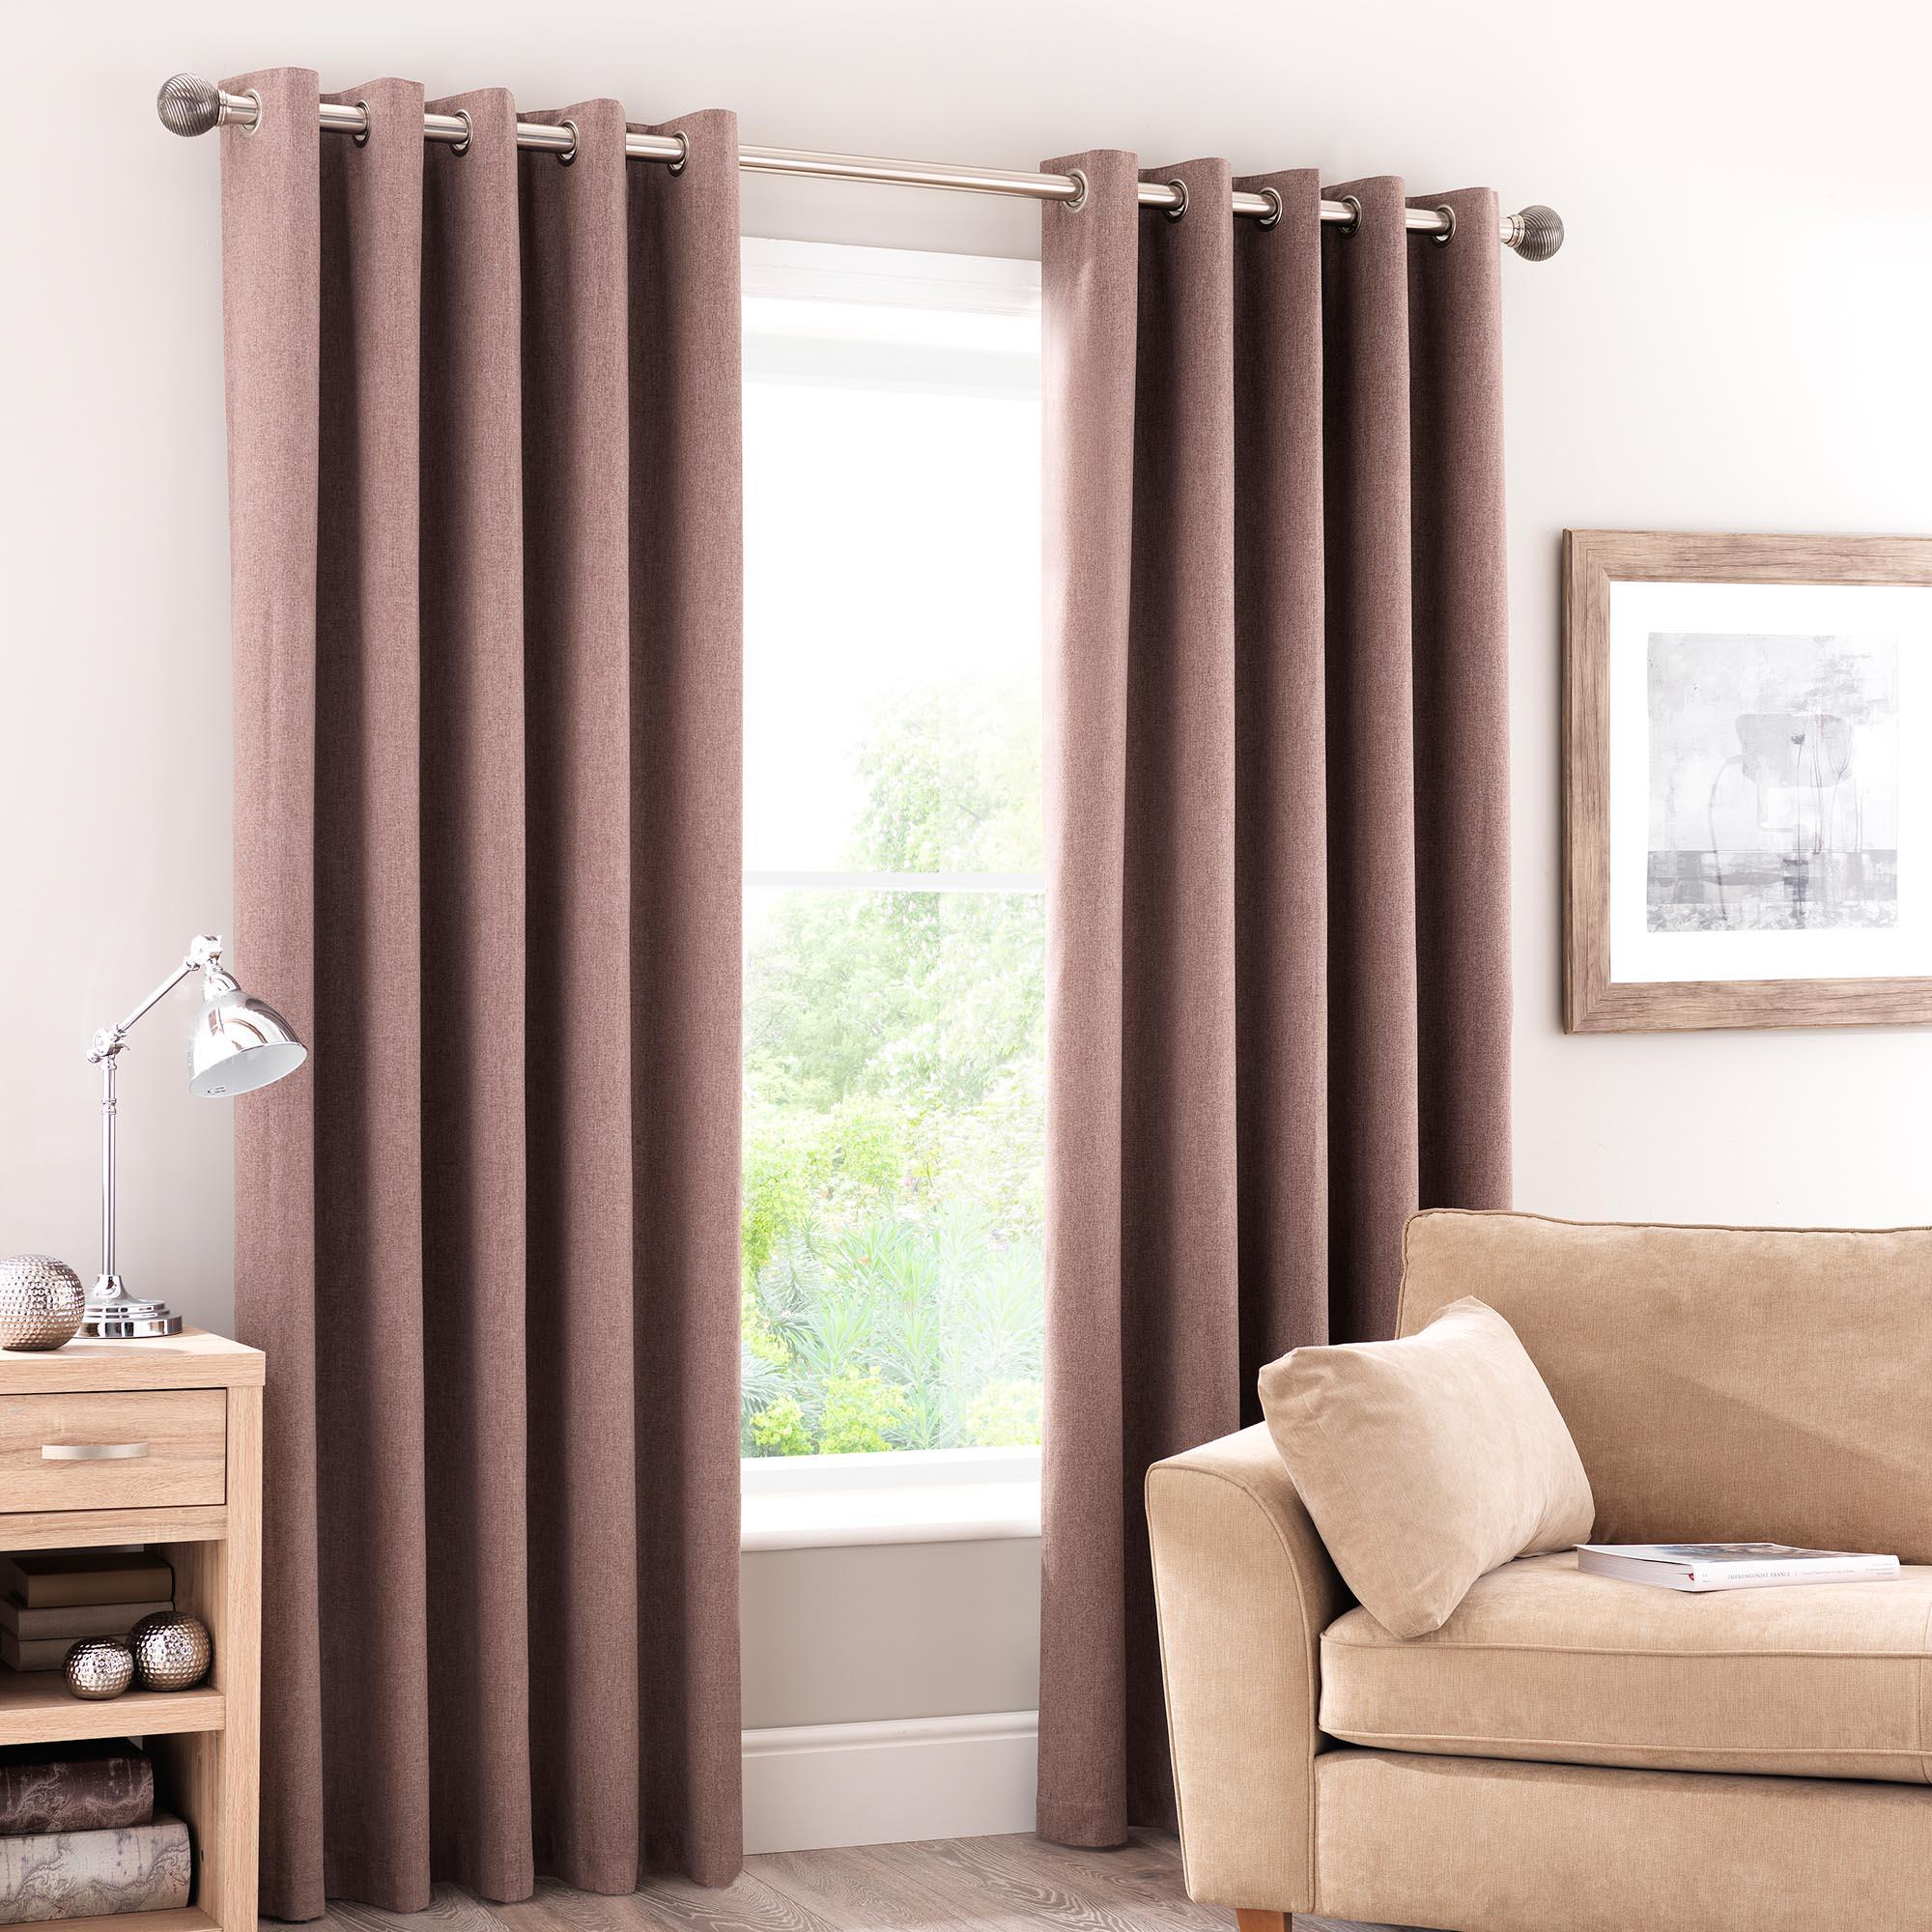 Advantages of Having Eyelet Curtains